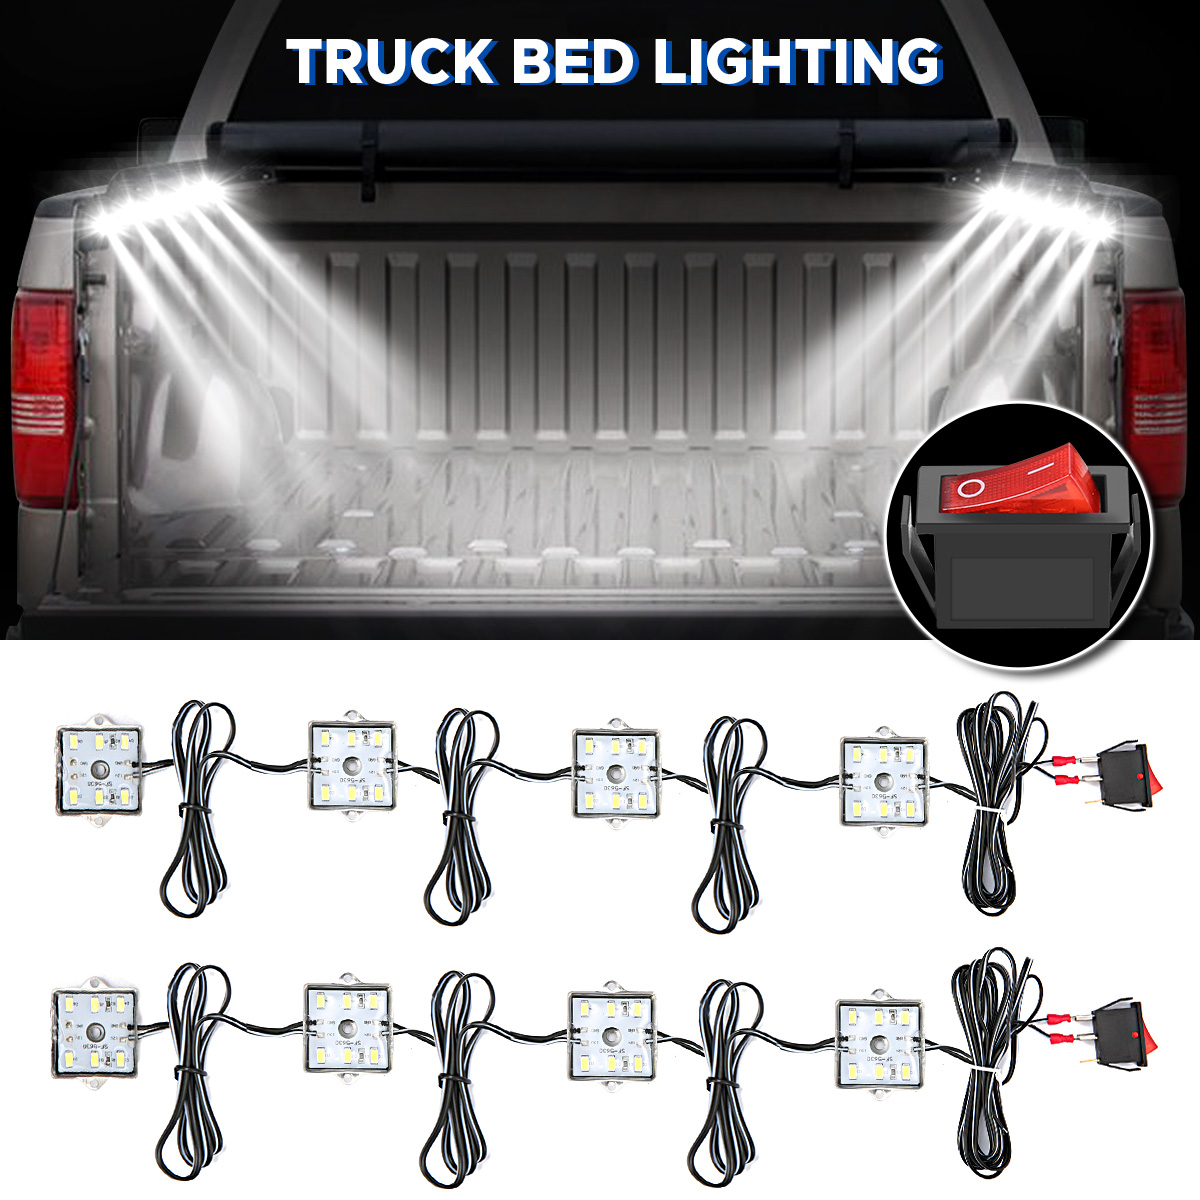 Lighting-Kit Trunk-Light All-Pick-Up Truck-Bed/rear-Work-Box 12V for White 48LED 8W DC